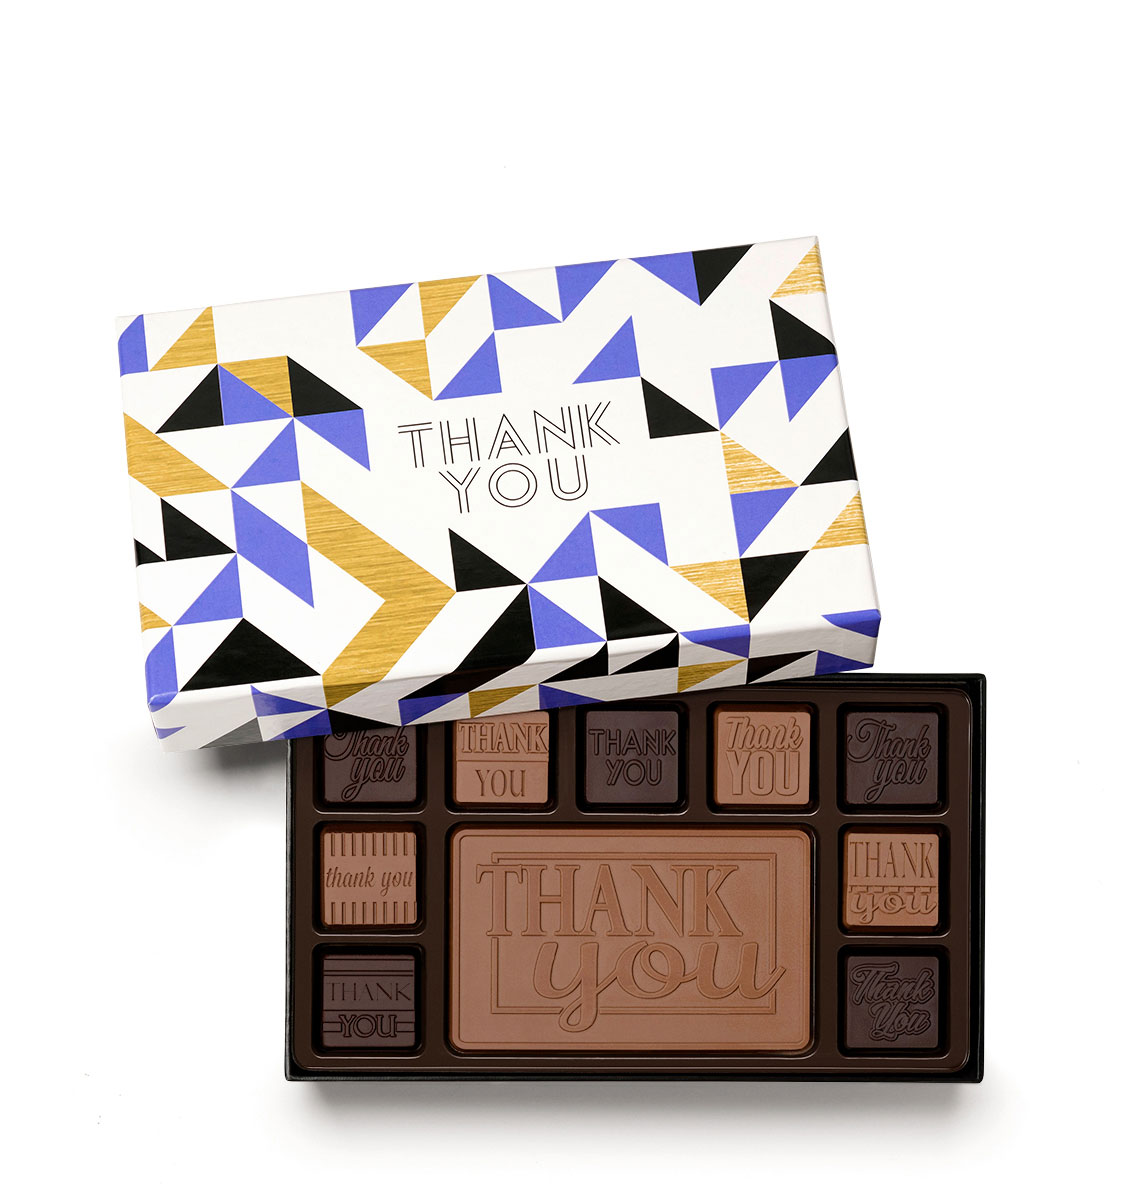 Gratitude thank you box of chocolates ready made